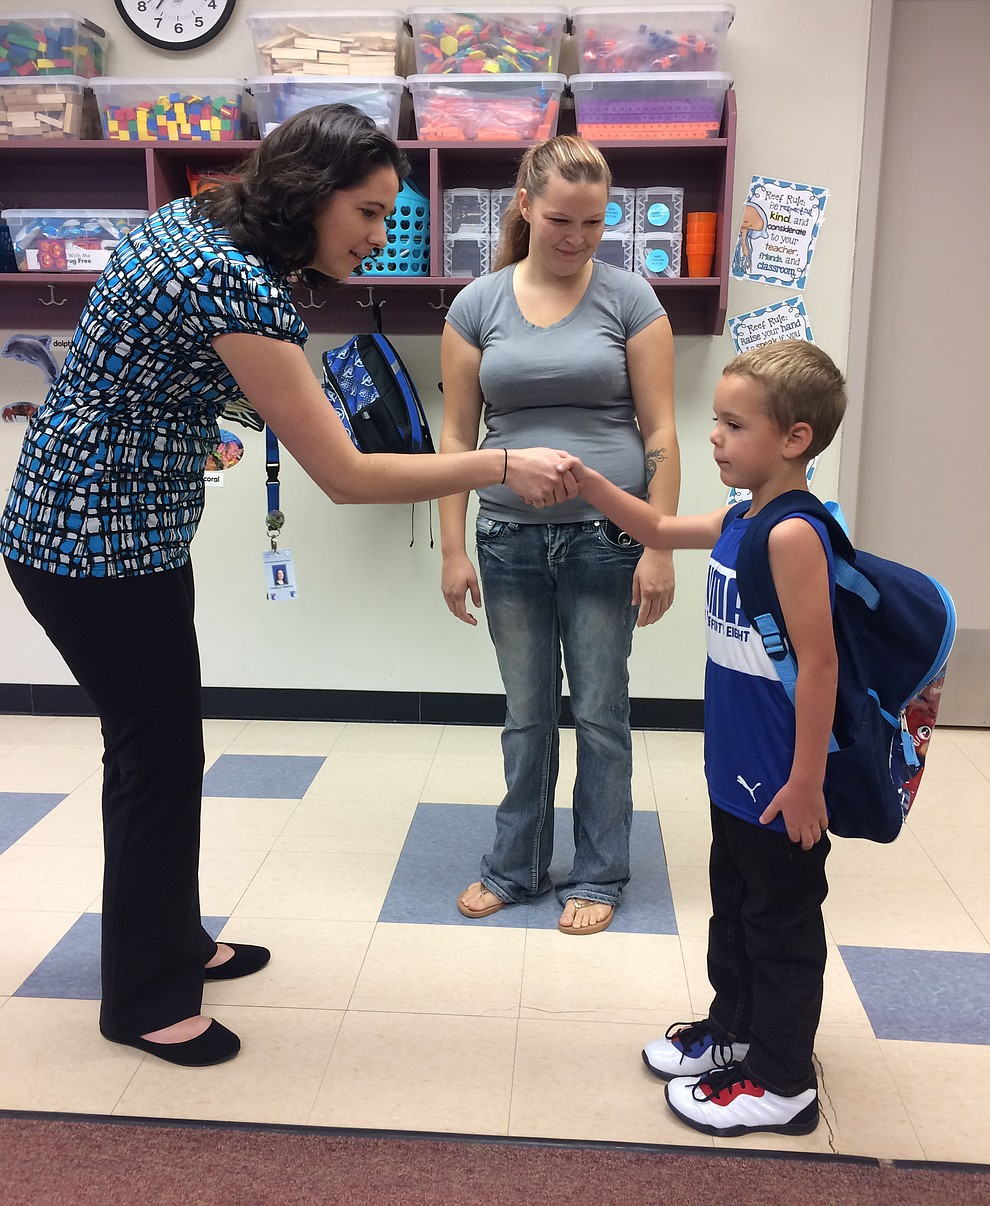 Territorial Early Childhood Center First Grade Teacher Danielle Frederic meets Bentlee Baldwin for the first day of school Monday, Aug. 5, while mother Kylie Baldwin watches their meeting. (Jason Wheeler/Courier)